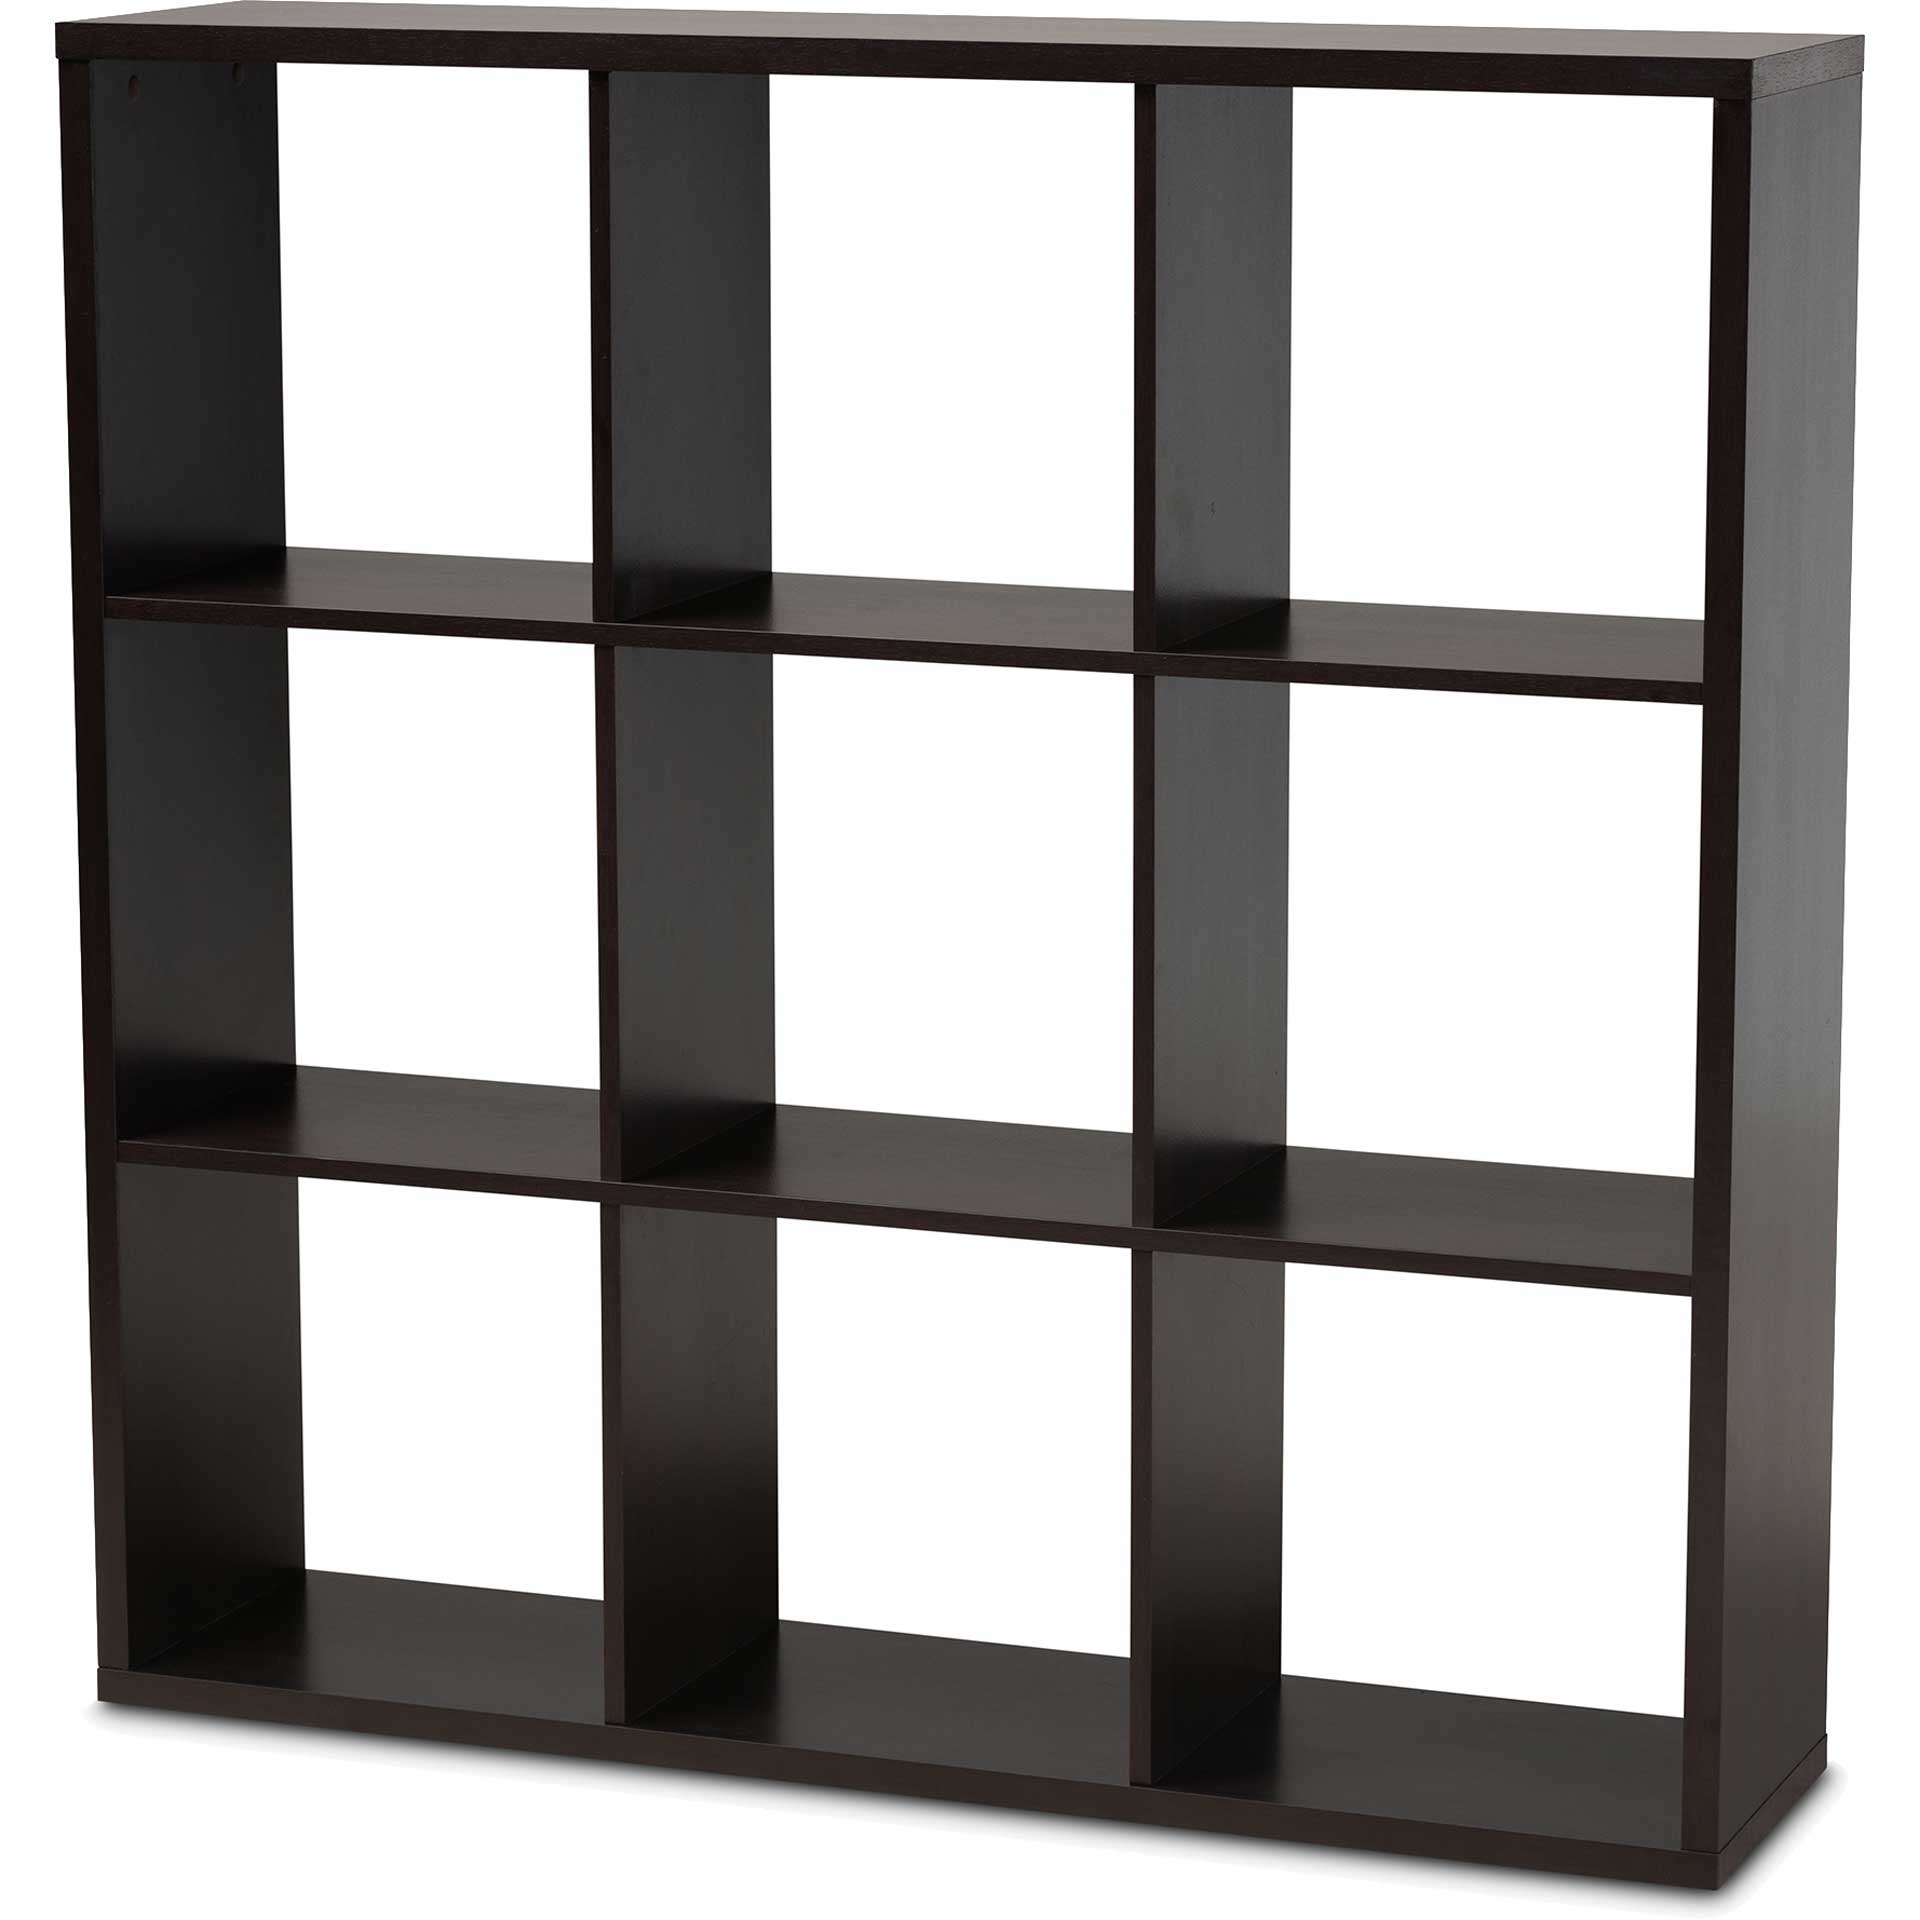 James 9-Cube Shelving Unit Dark Brown